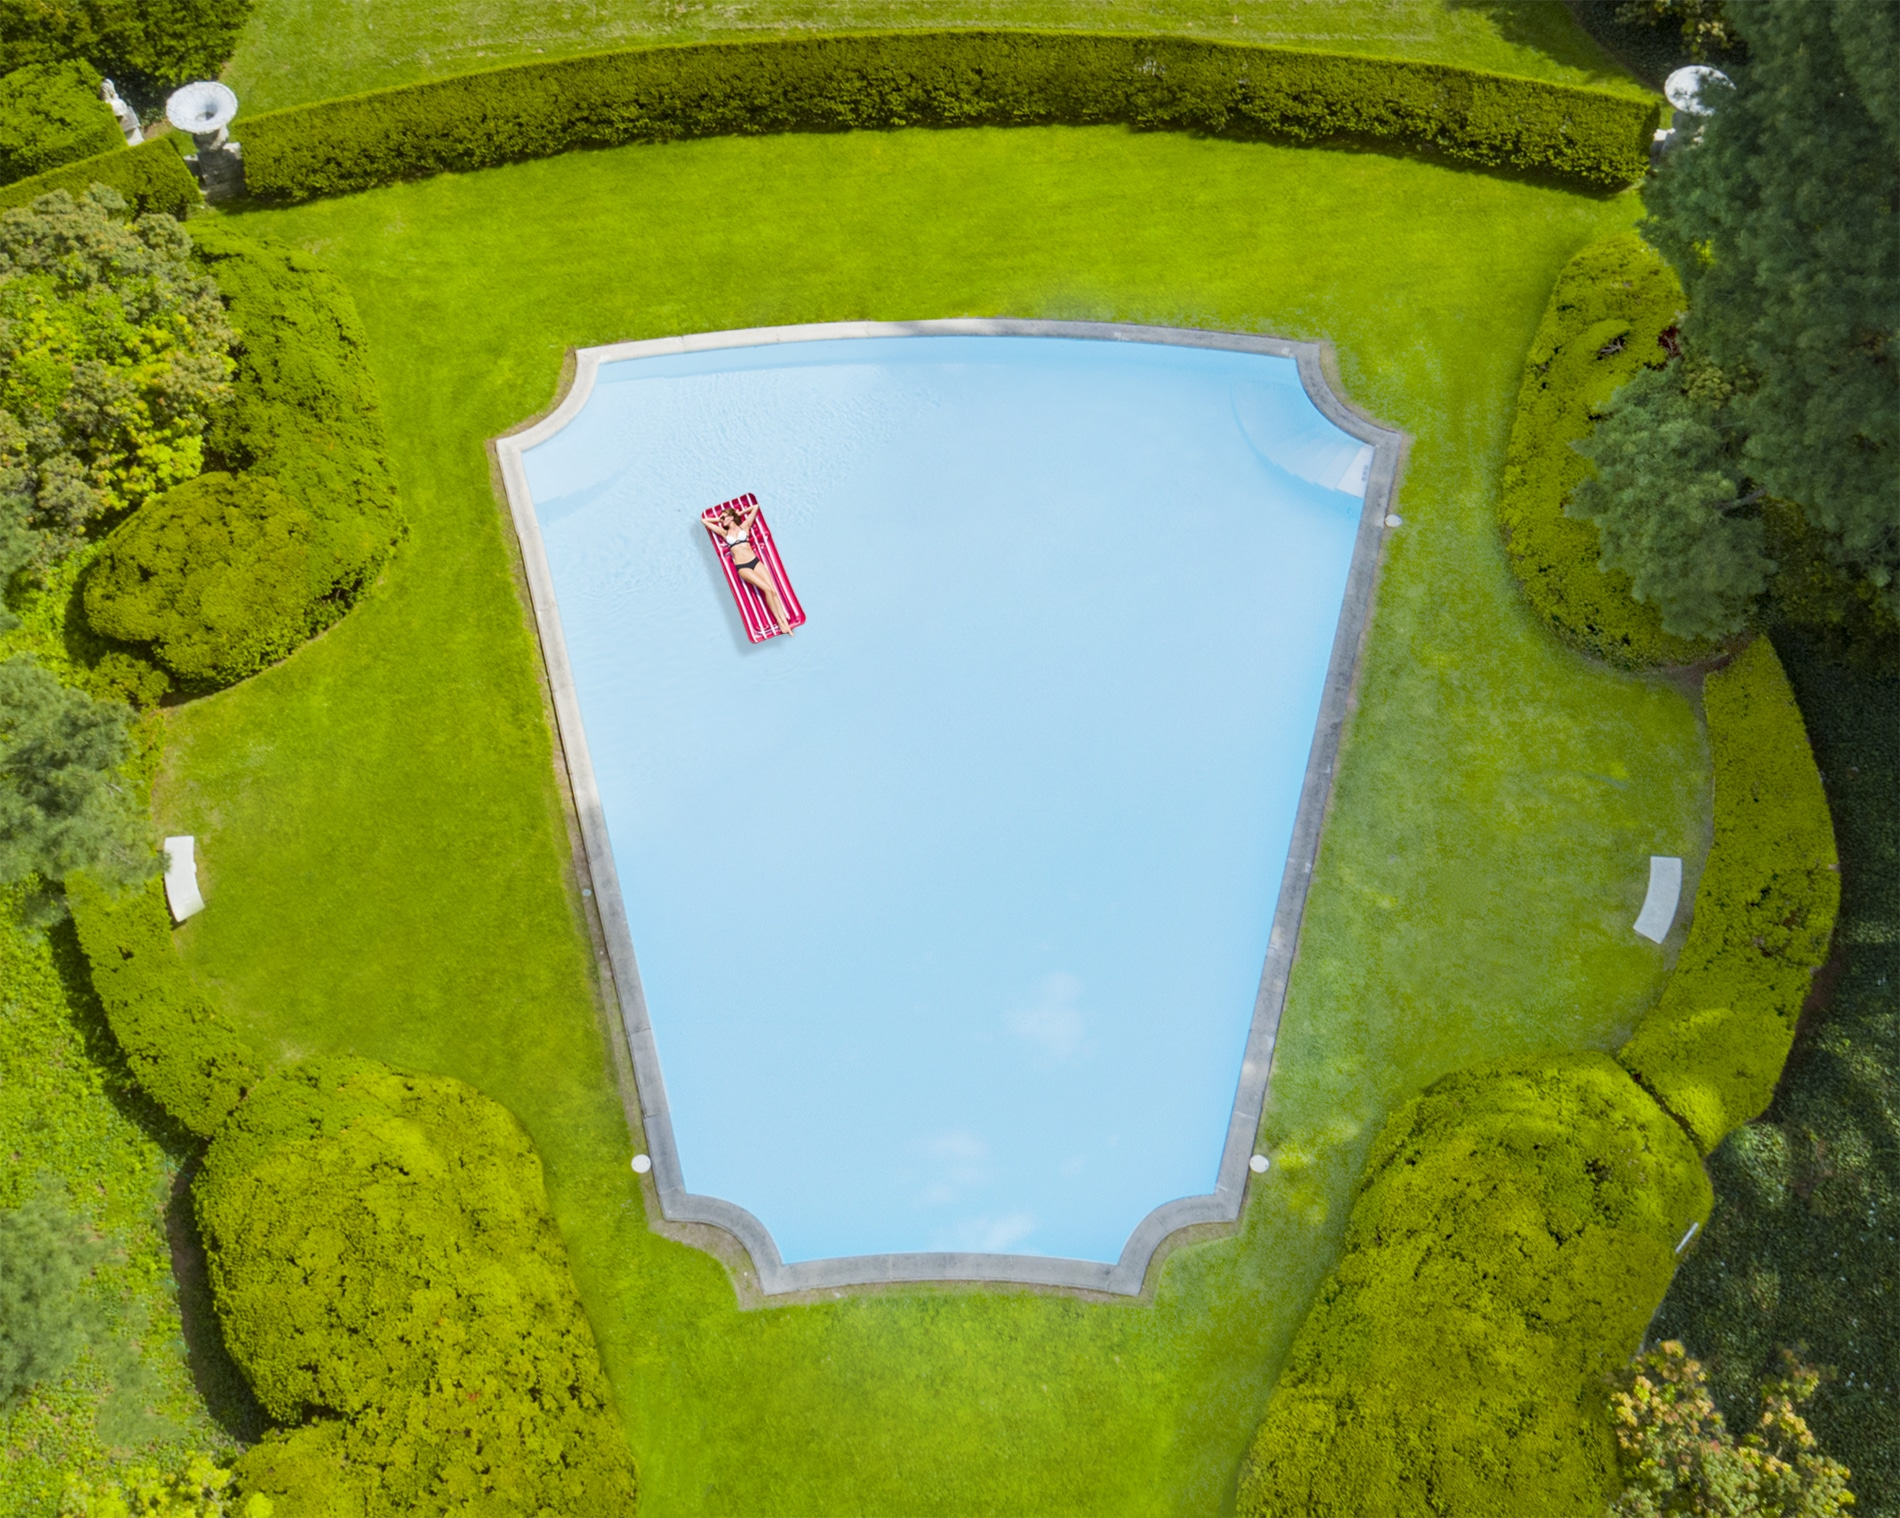 Drone Photograph of woman in a bikini lying on a float in a vintage swimming pool